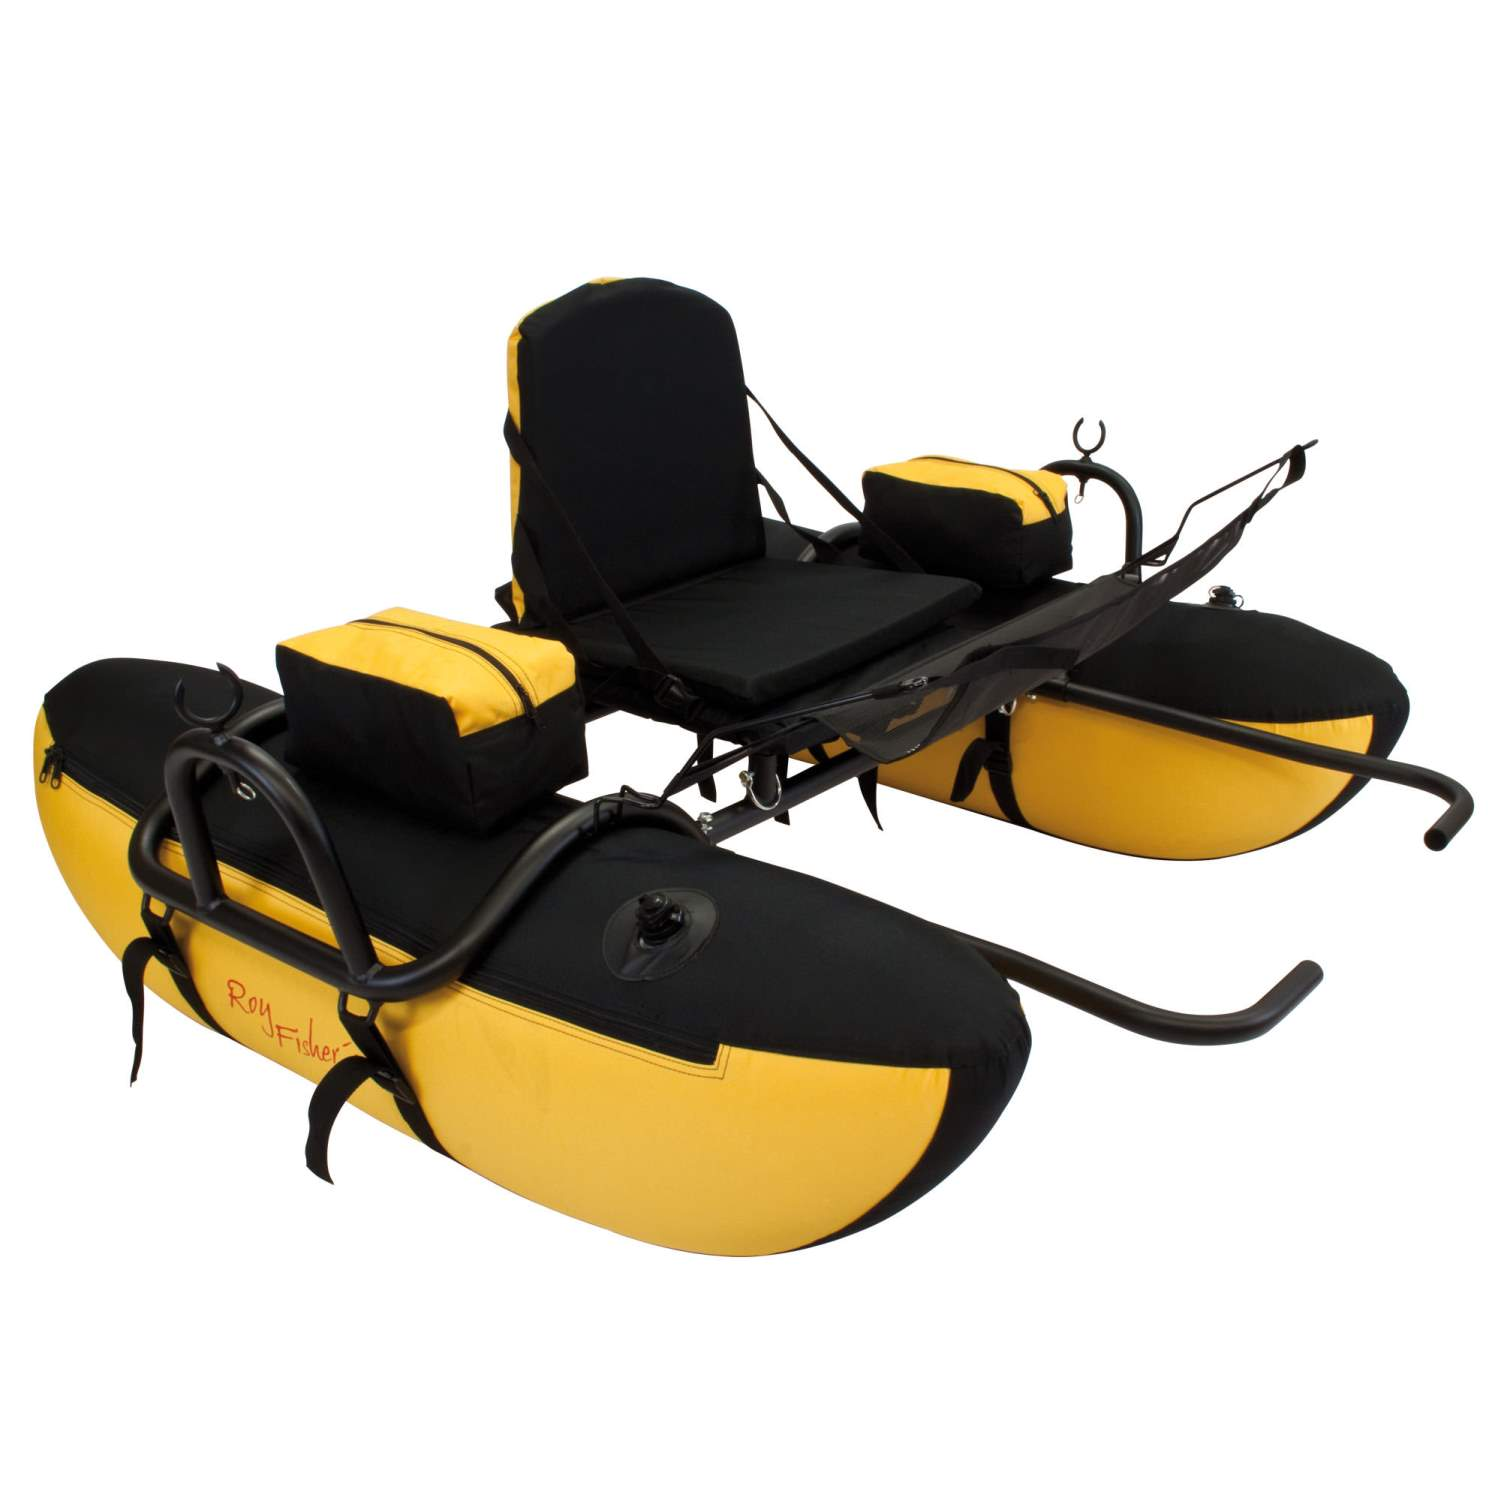 chair leg fishing floats espresso dining chairs guidestar ii float belly boat pontoon